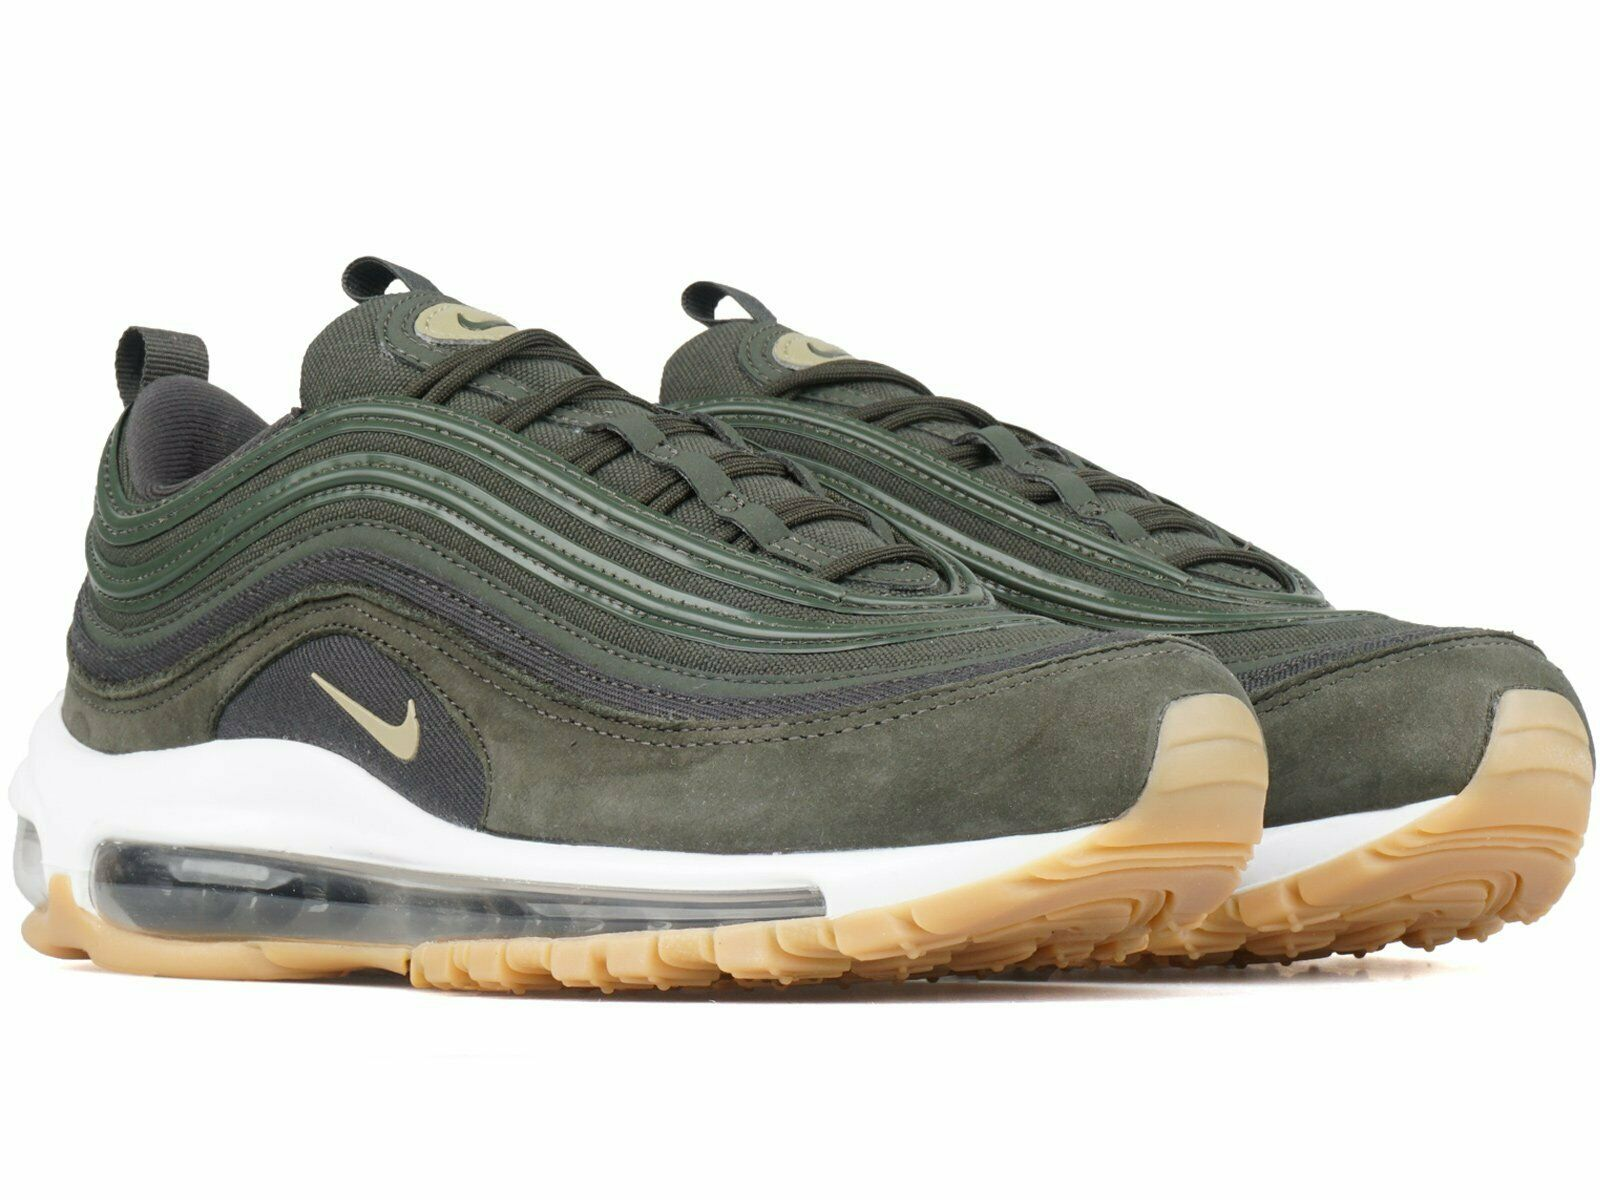 WOMEN'S NIKE AIR MAX 97 ULTRA SHOES Size 8 SEQUOIA OLIVE